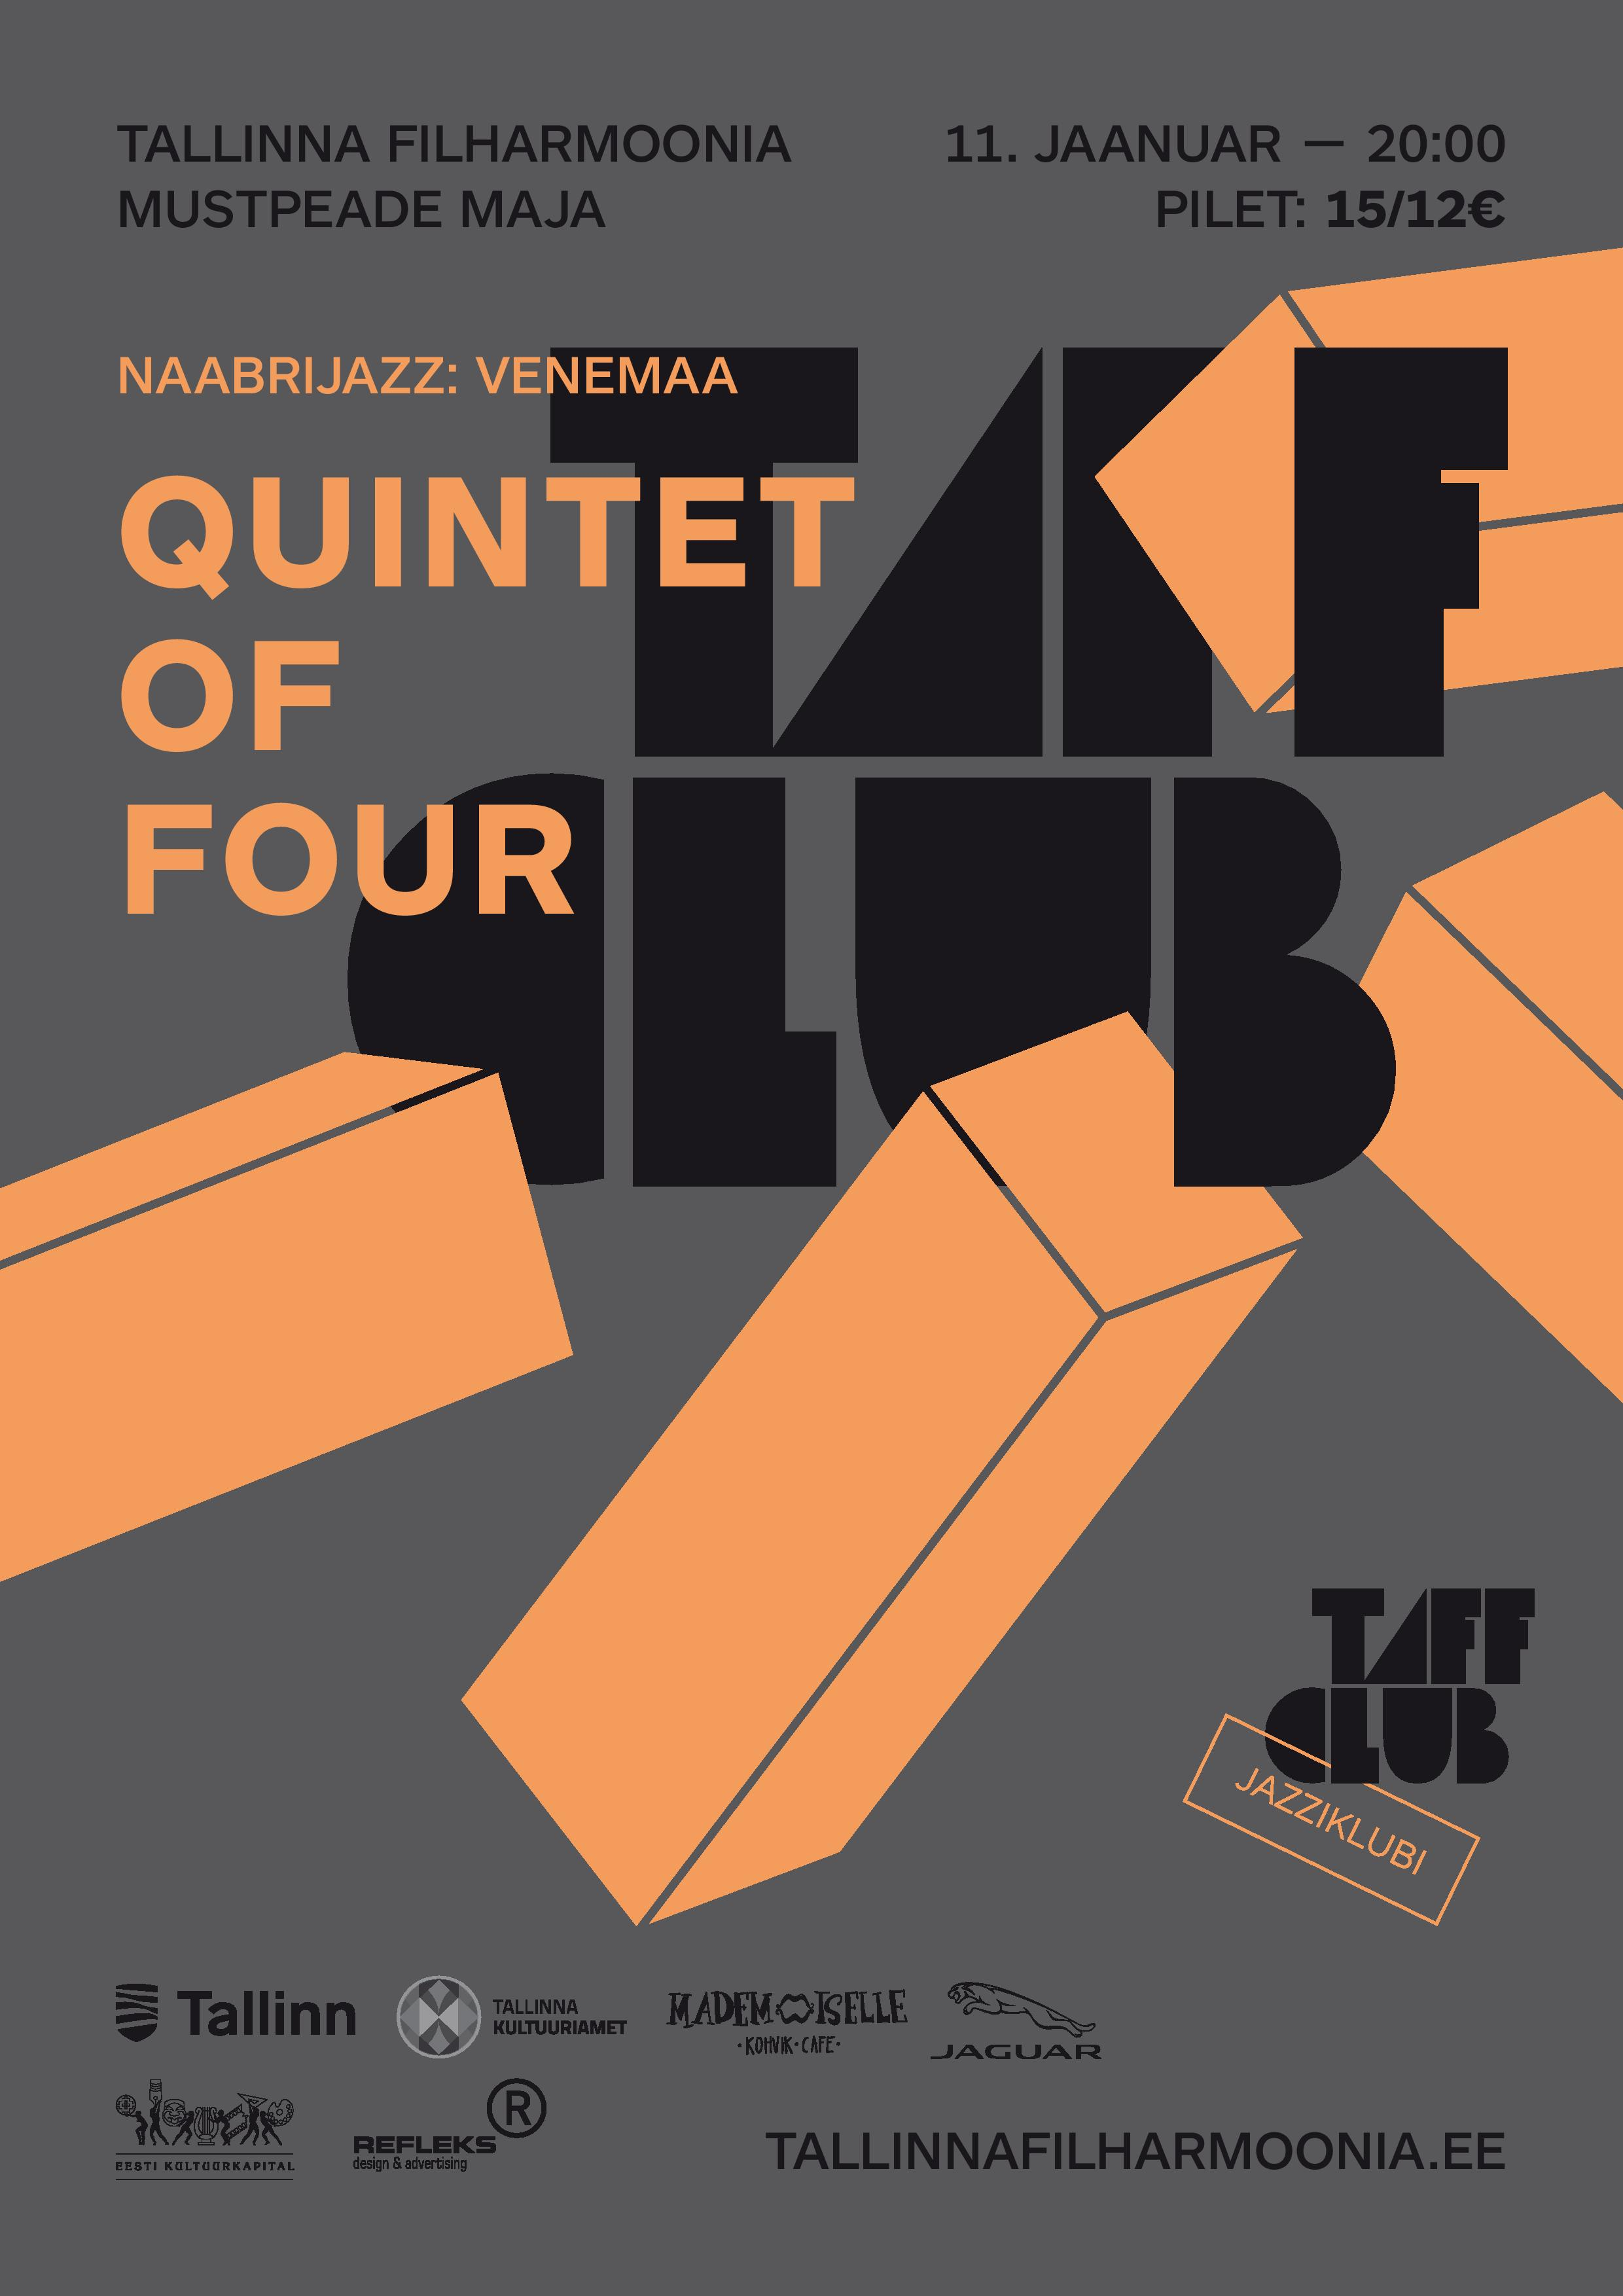 TAFF CLUB. Naabrijazz: Venemaa. QUINTET OF FOUR